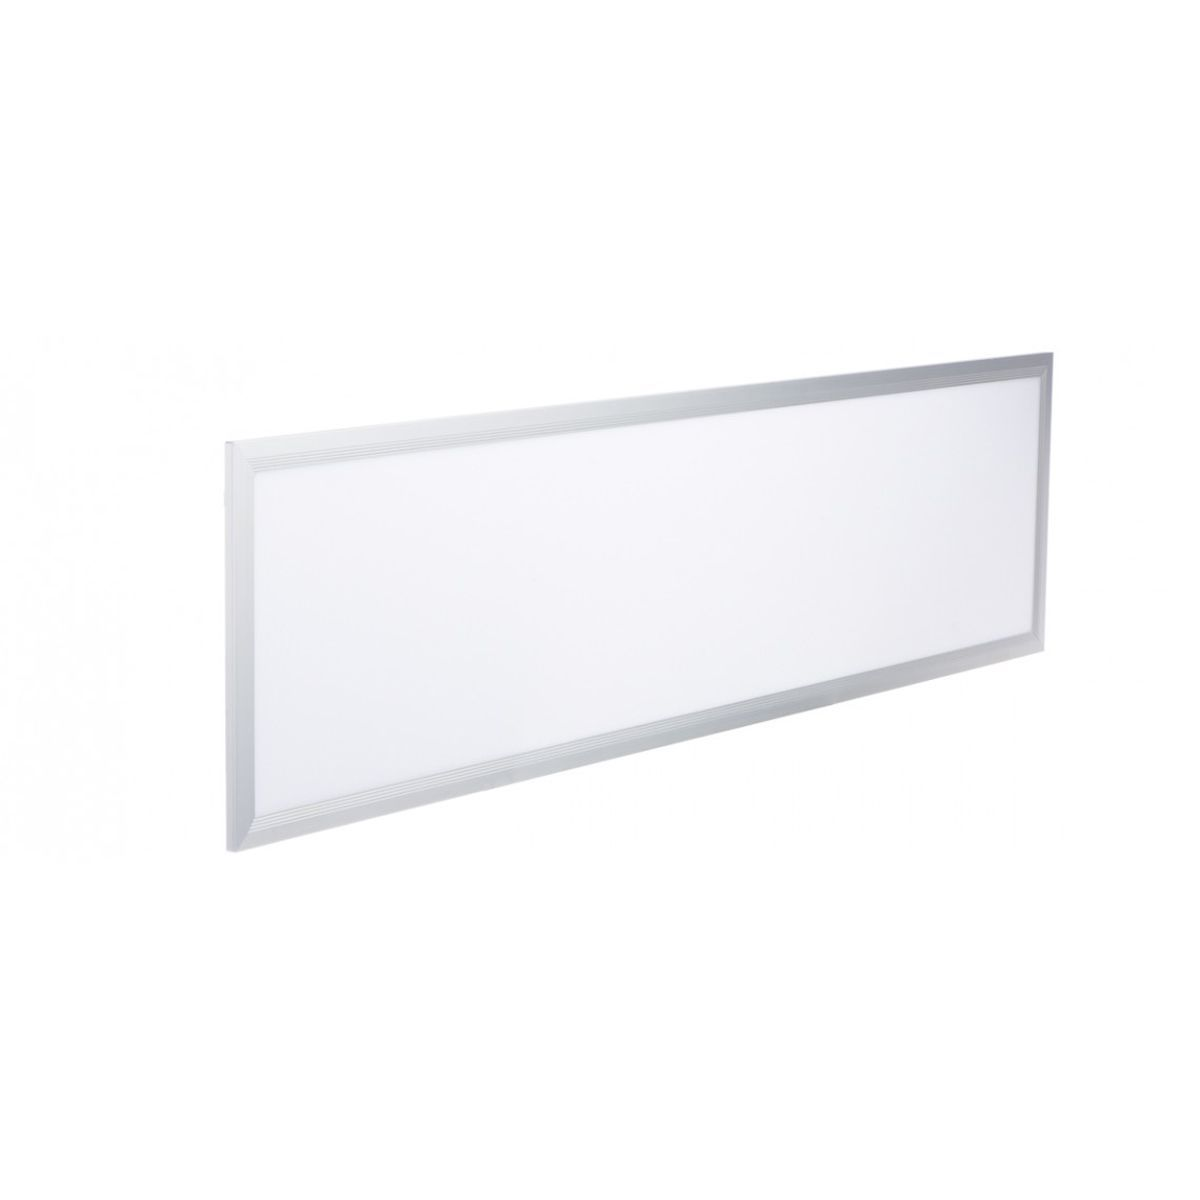 Brilliant 1200x300mm 40w Led Panel 6500k Daylight Led Panel Led Panel Light Paneling